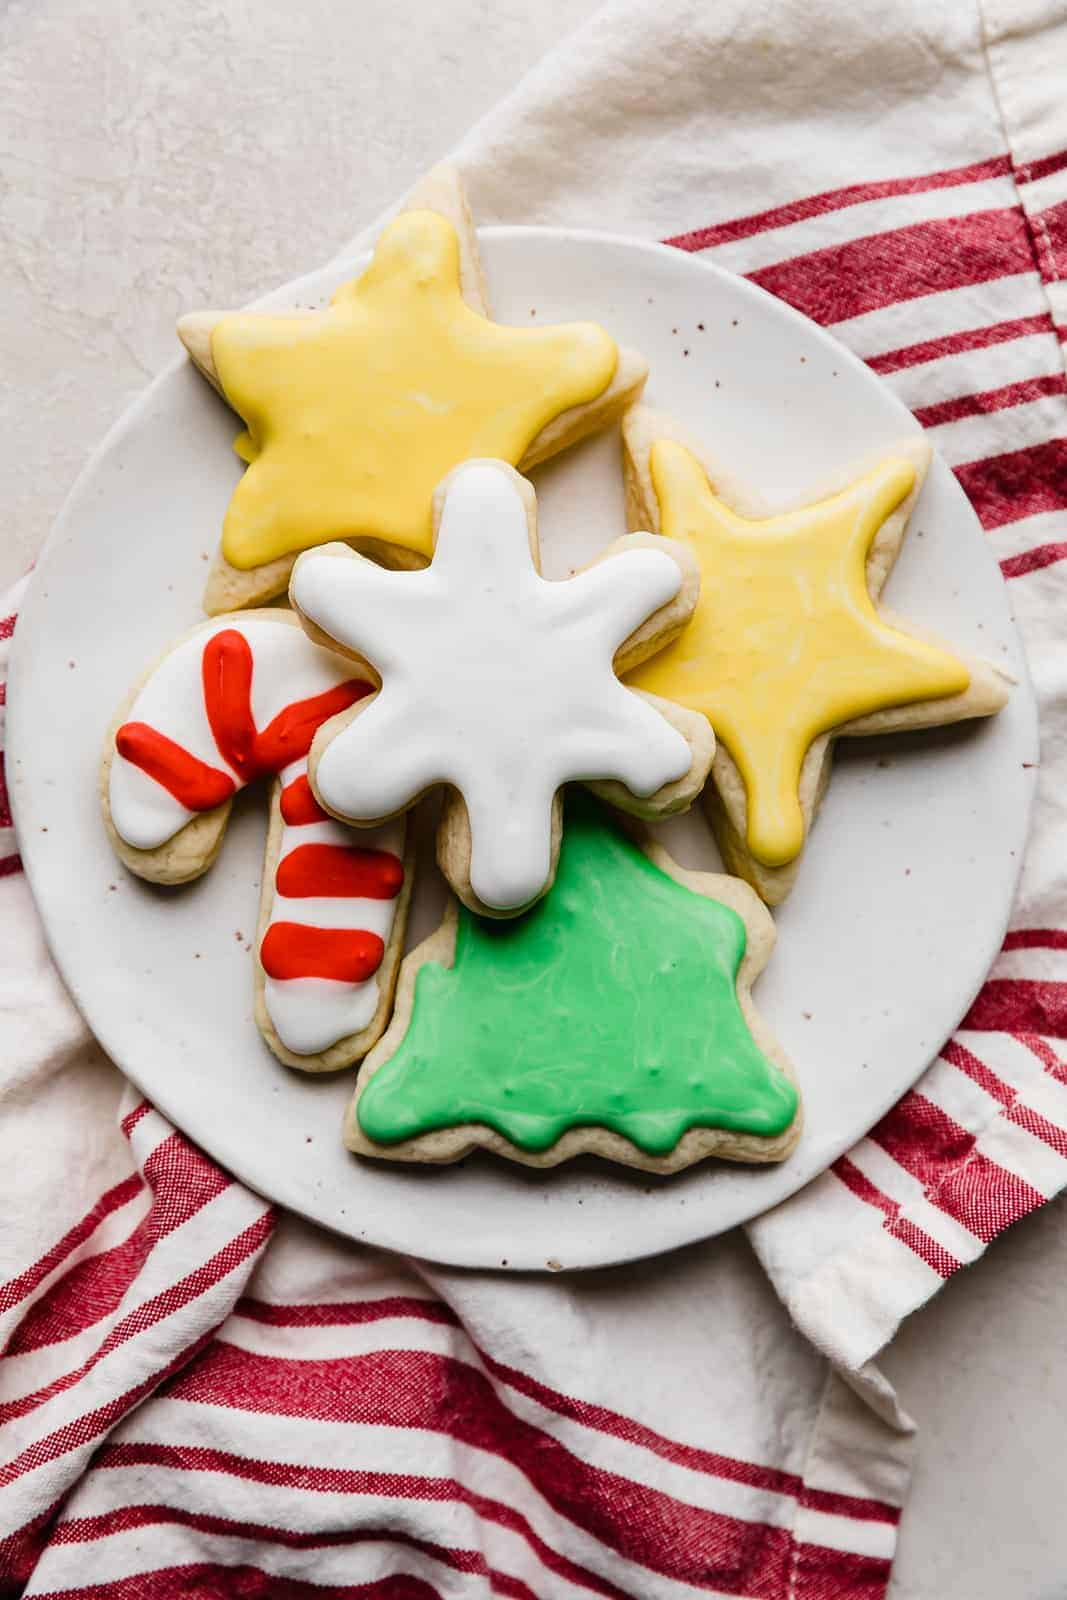 Christmas sugar cookies topped with royal icing on a white plate.